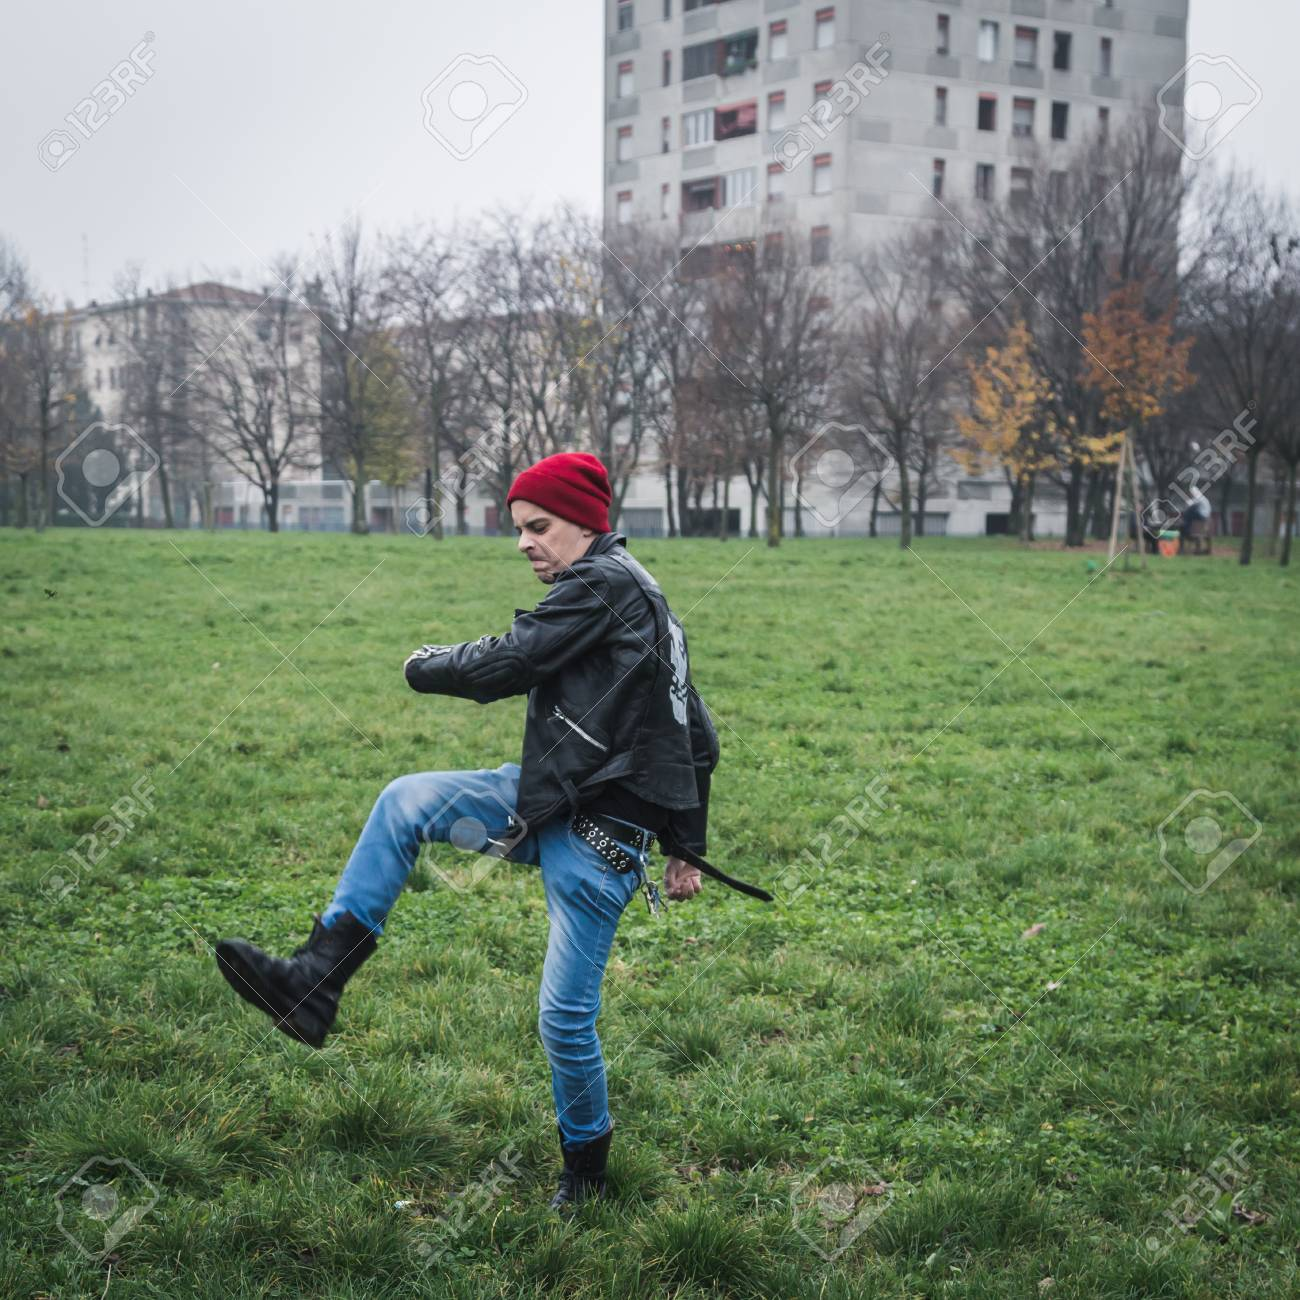 d2ddae7ea8d Punk guy with beanie posing in a city park Stock Photo - 34600760